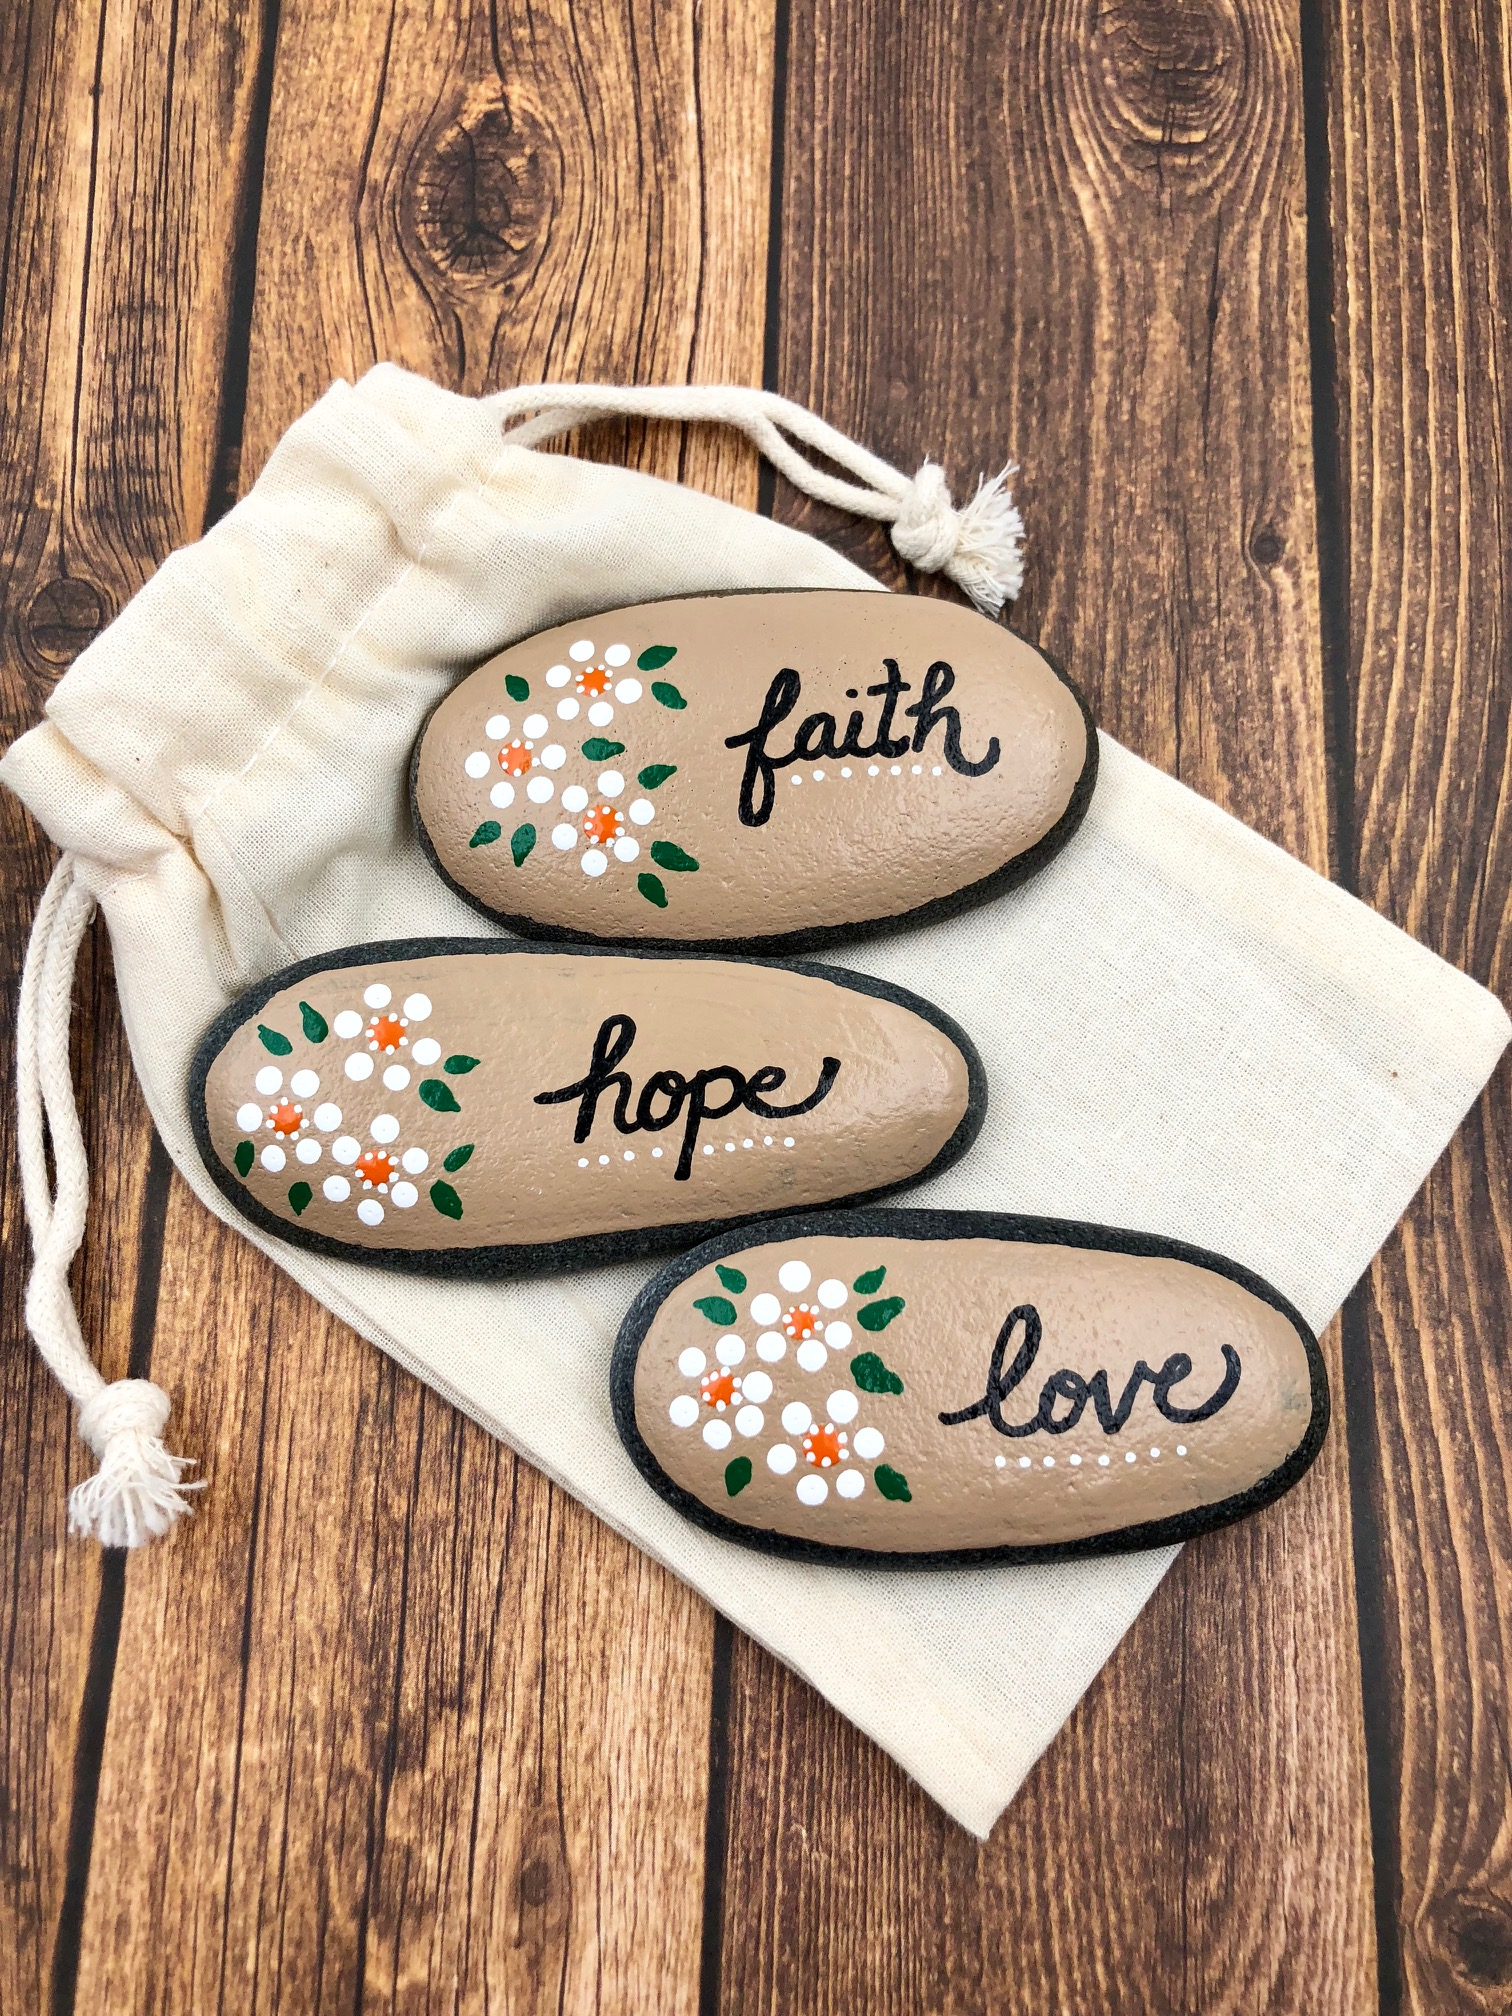 Faith, Hope, and Love Painted Stones